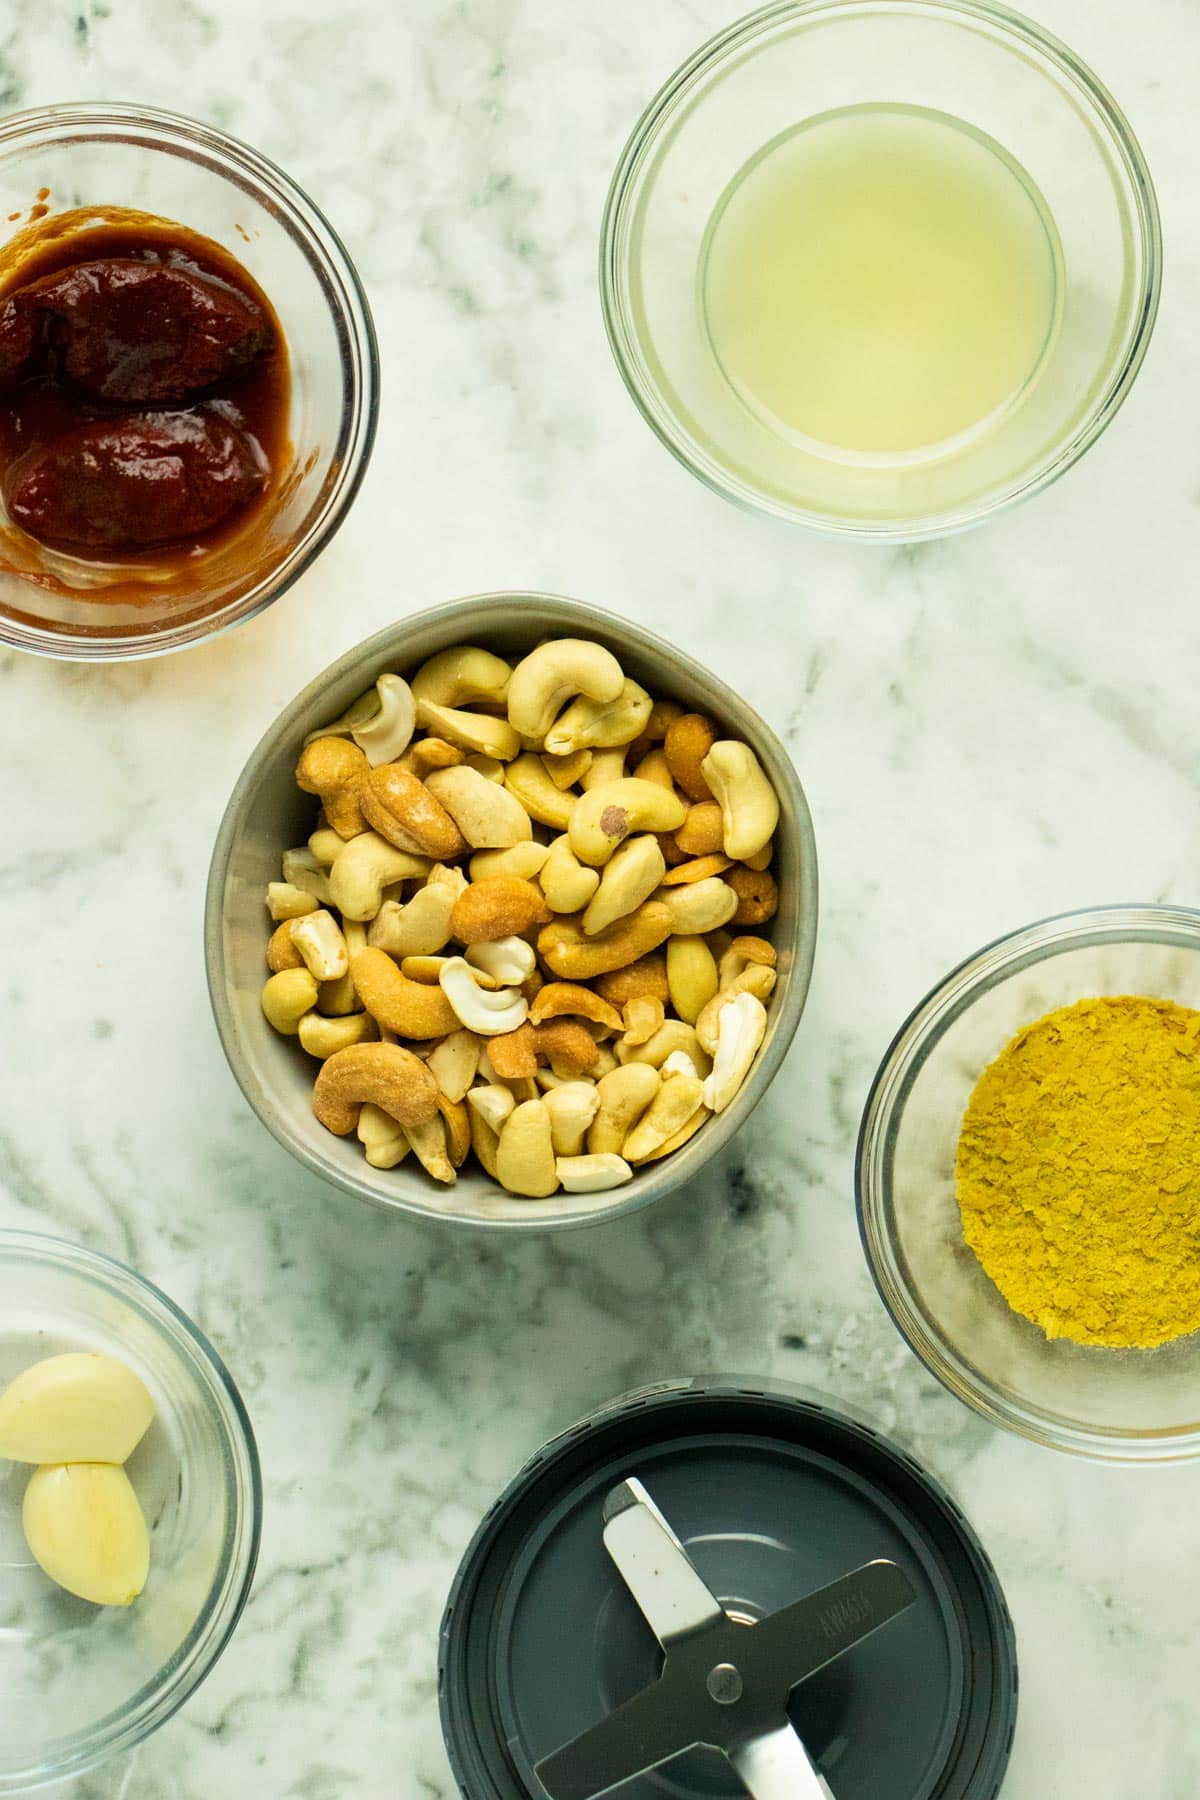 bowl of cashews surrounded by bowls of the other sauce ingredients